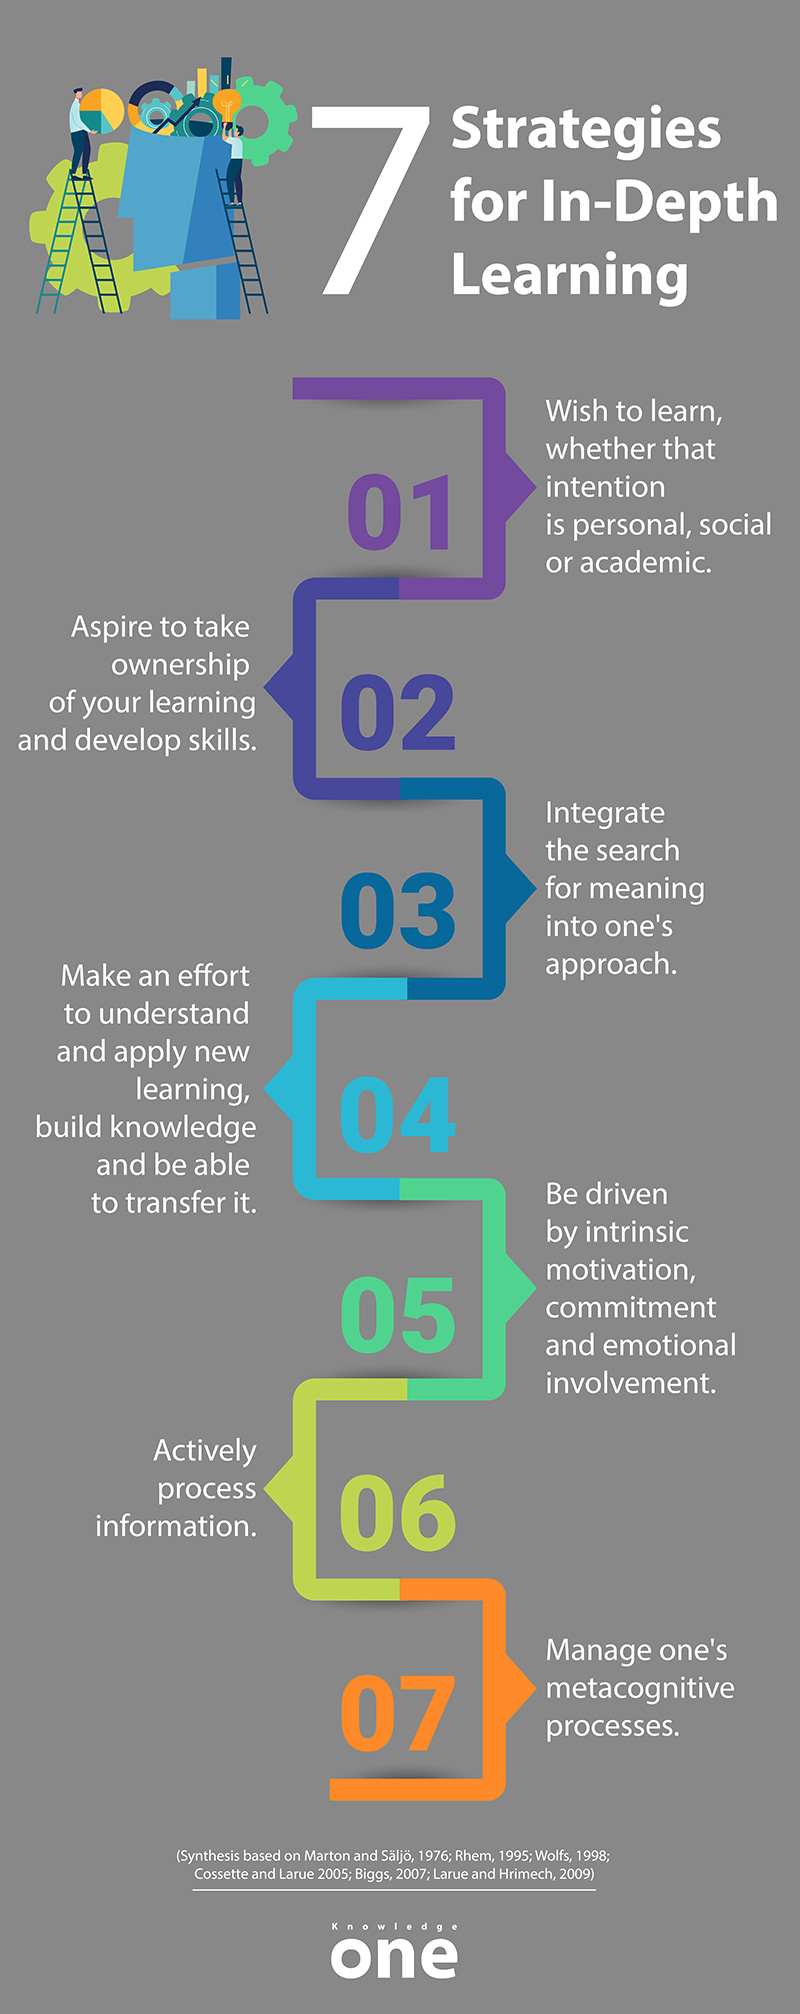 infographic on 7 strategies for in-depth learning